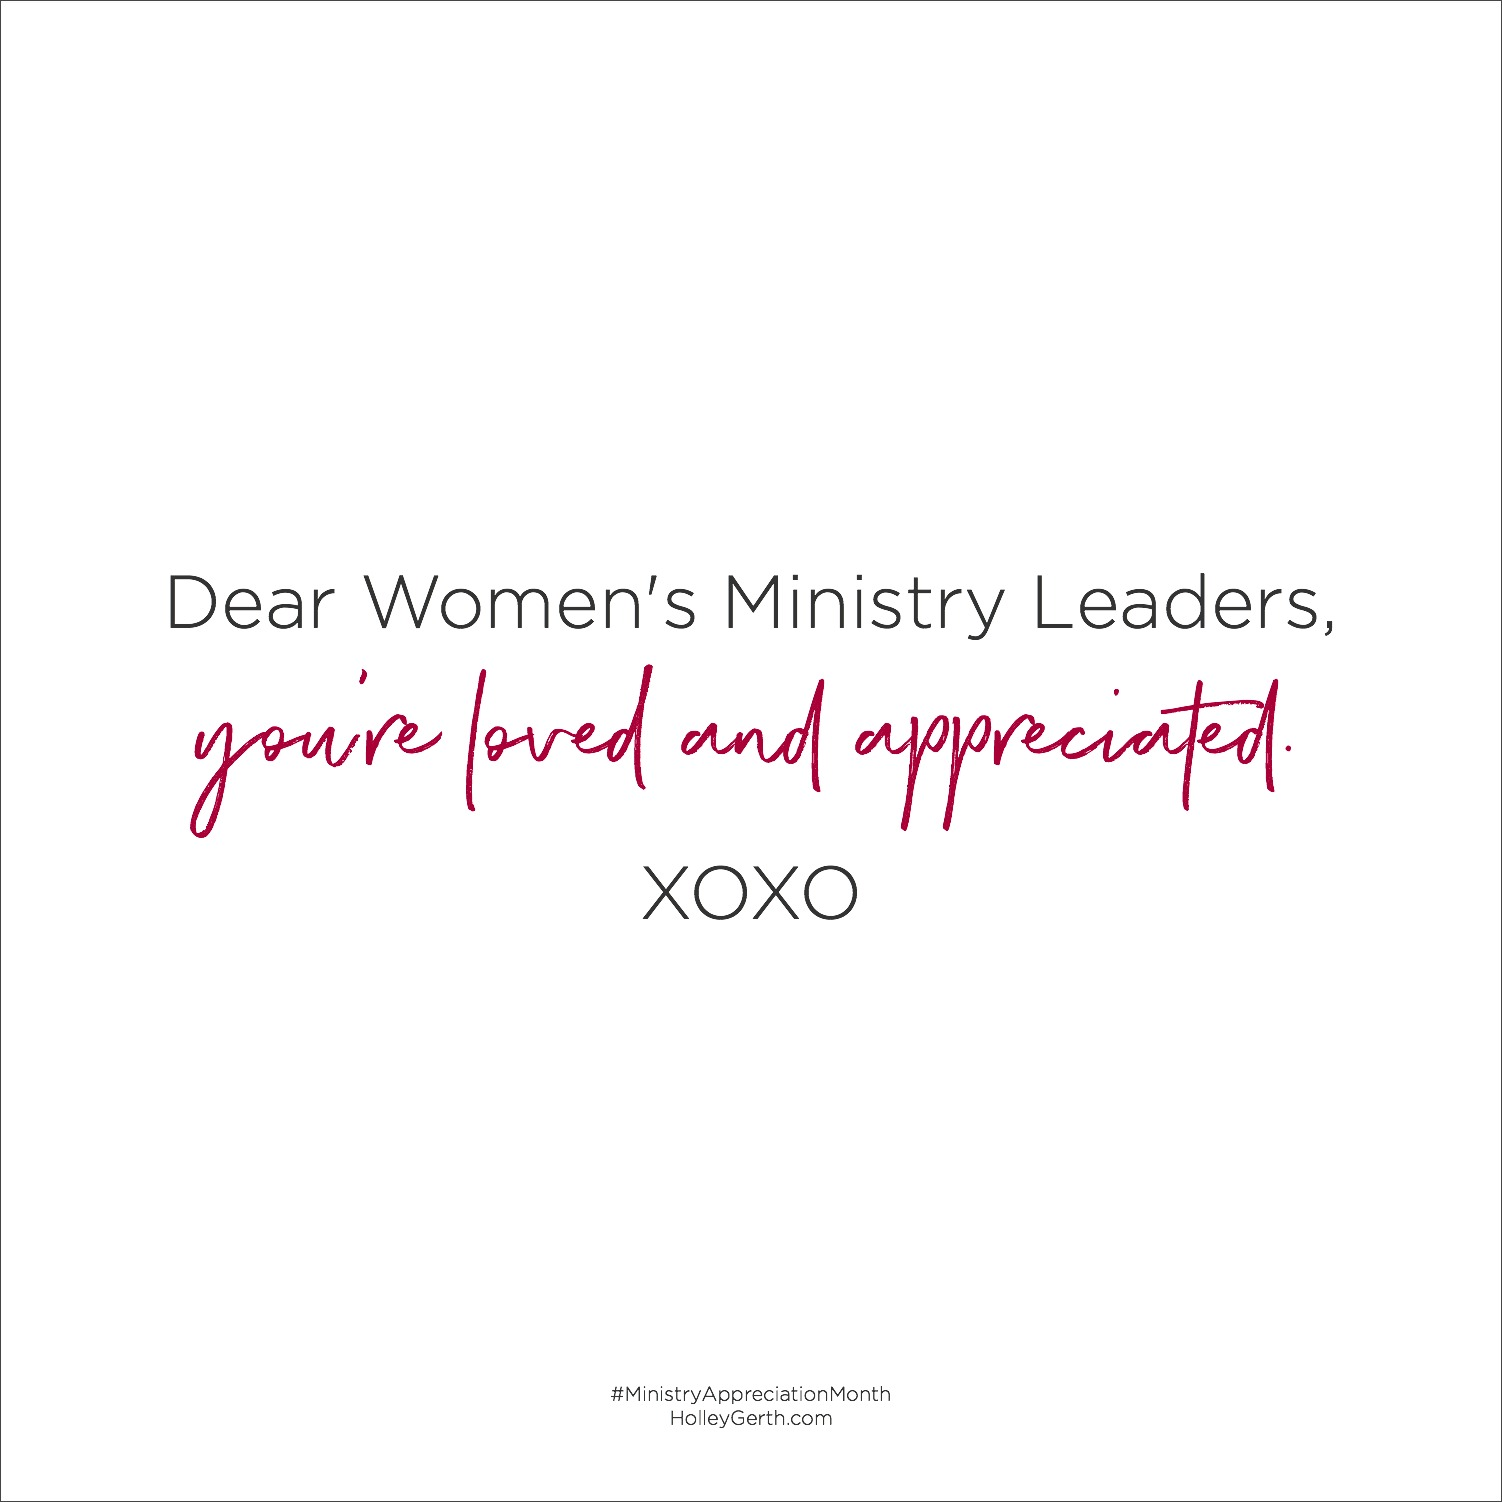 Let's Love Our Women's Ministry Leaders